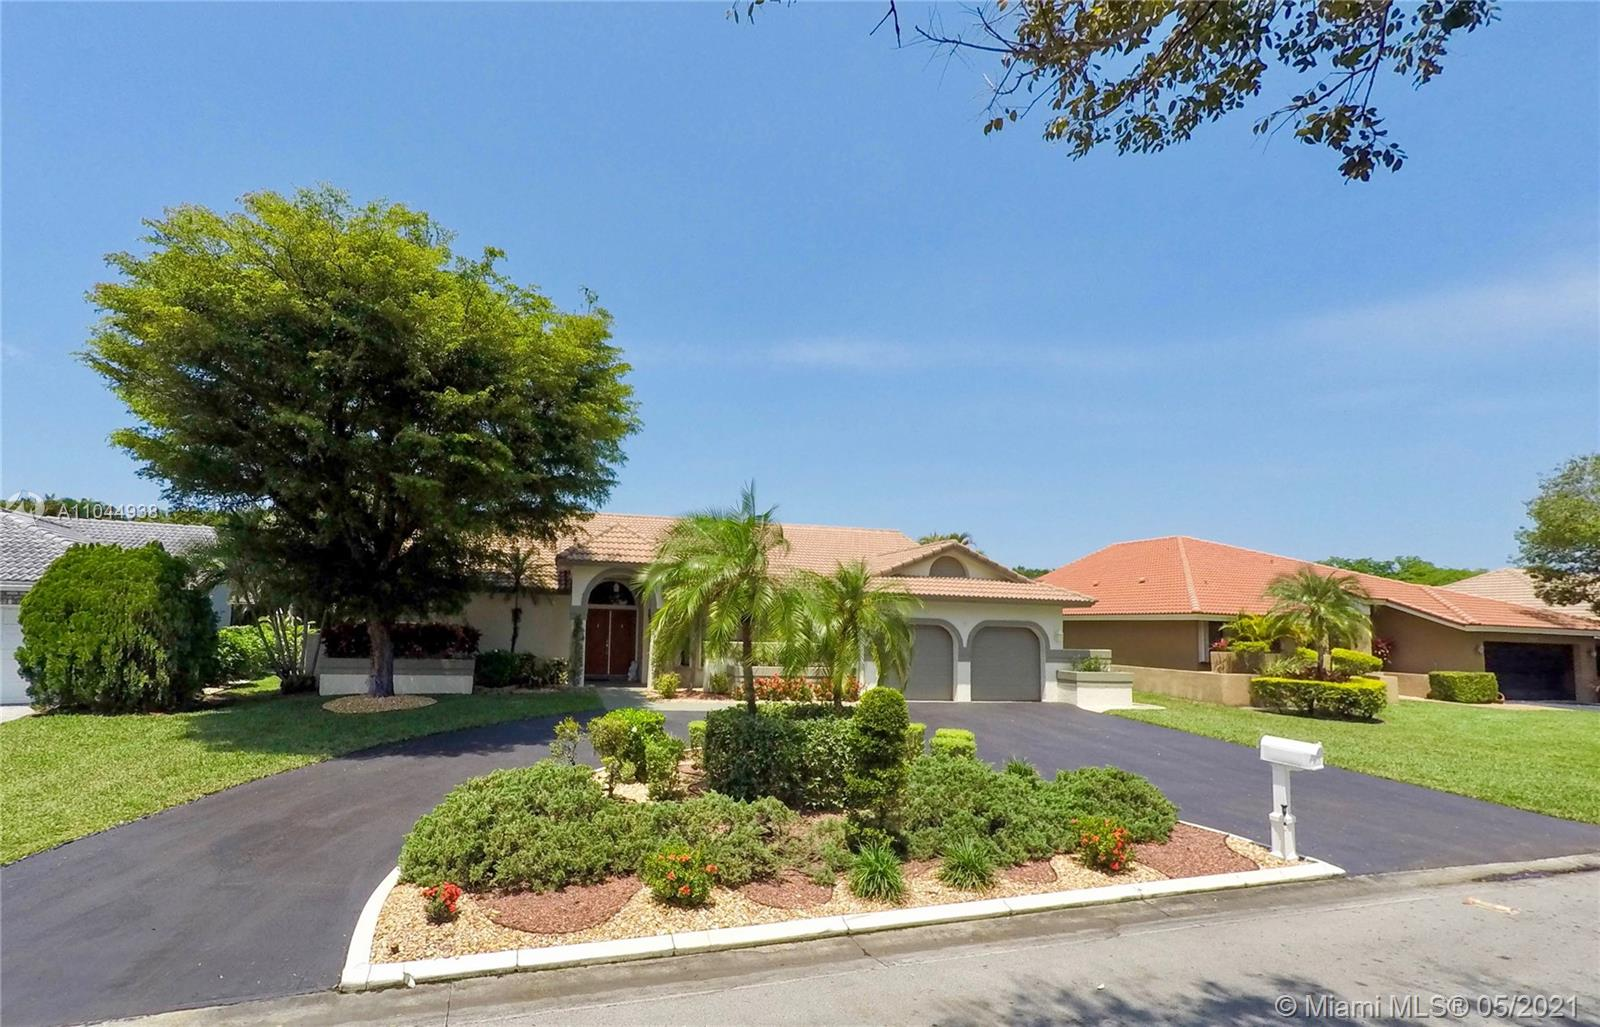 Property for sale at 4766 NW 91st Way, Coral Springs,  Florida 33067